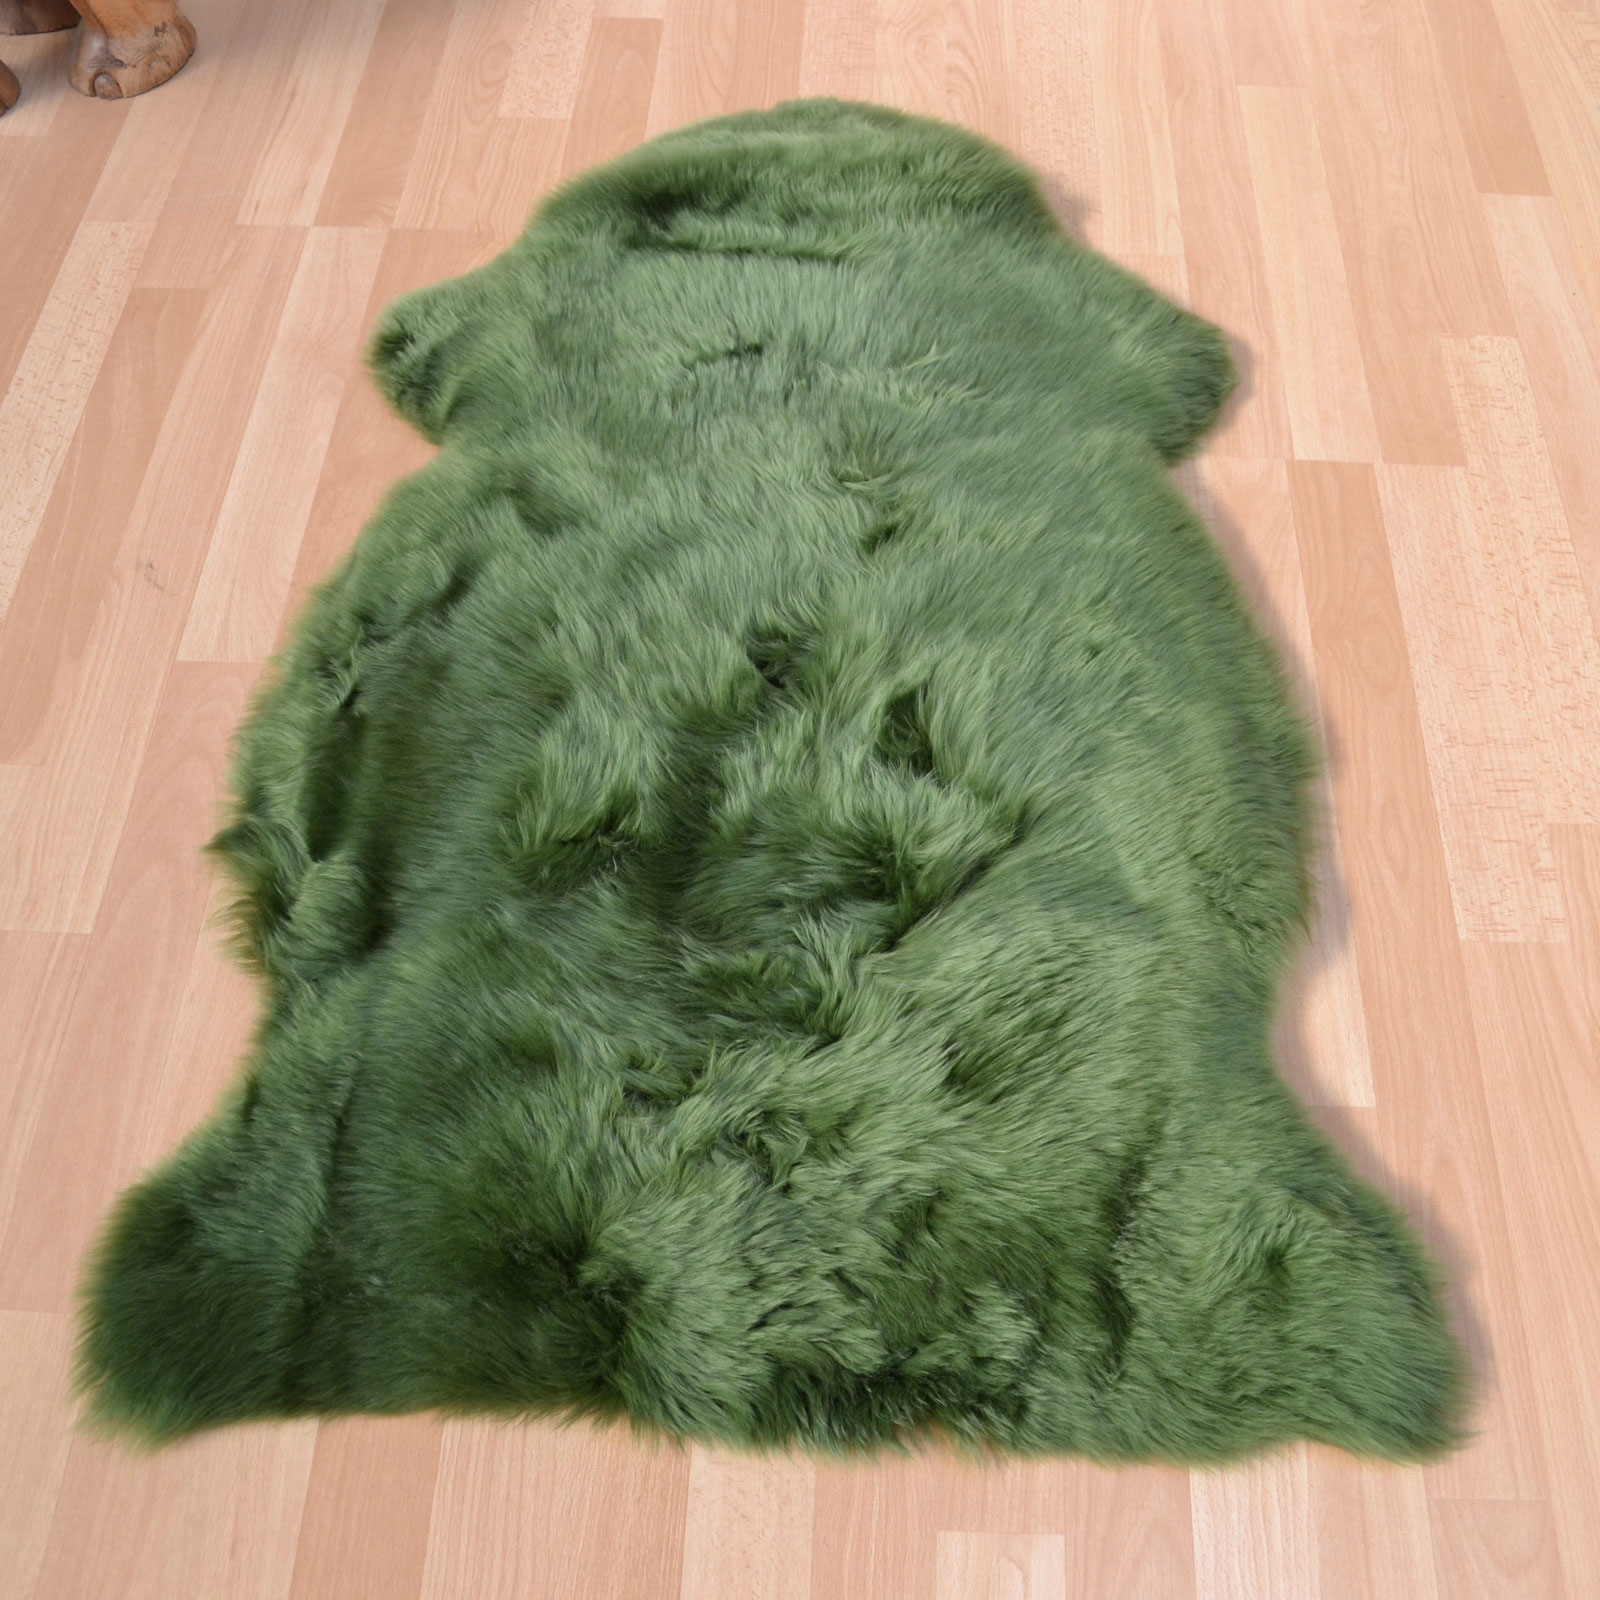 Bowron Sheepskin Rugs in Meadow Green